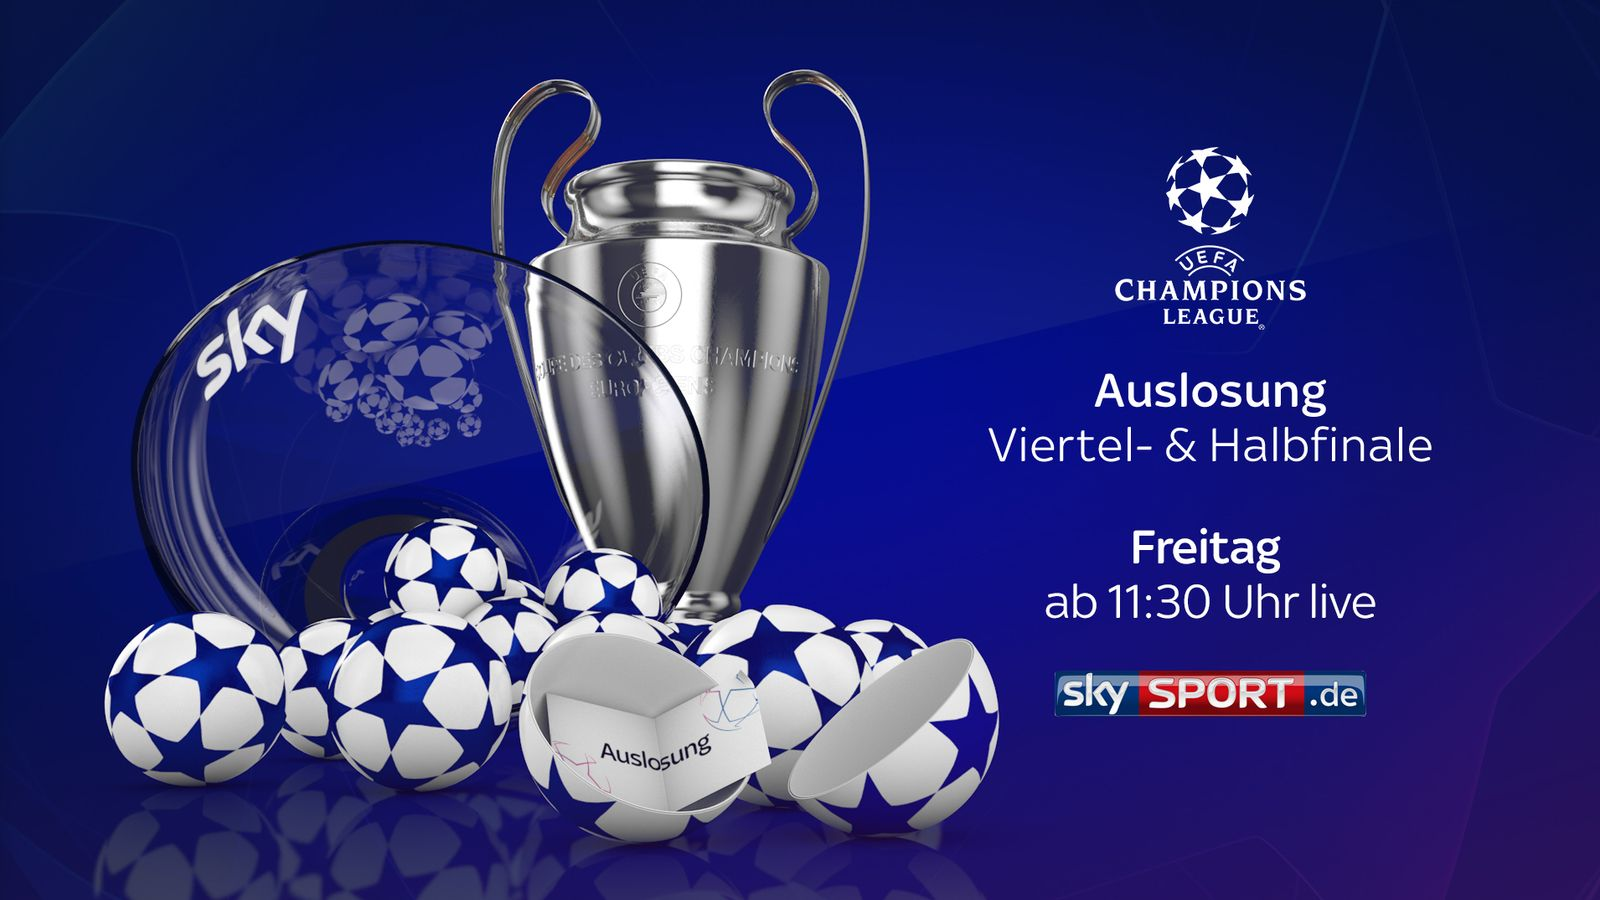 Champions League Auslosung Live Tv